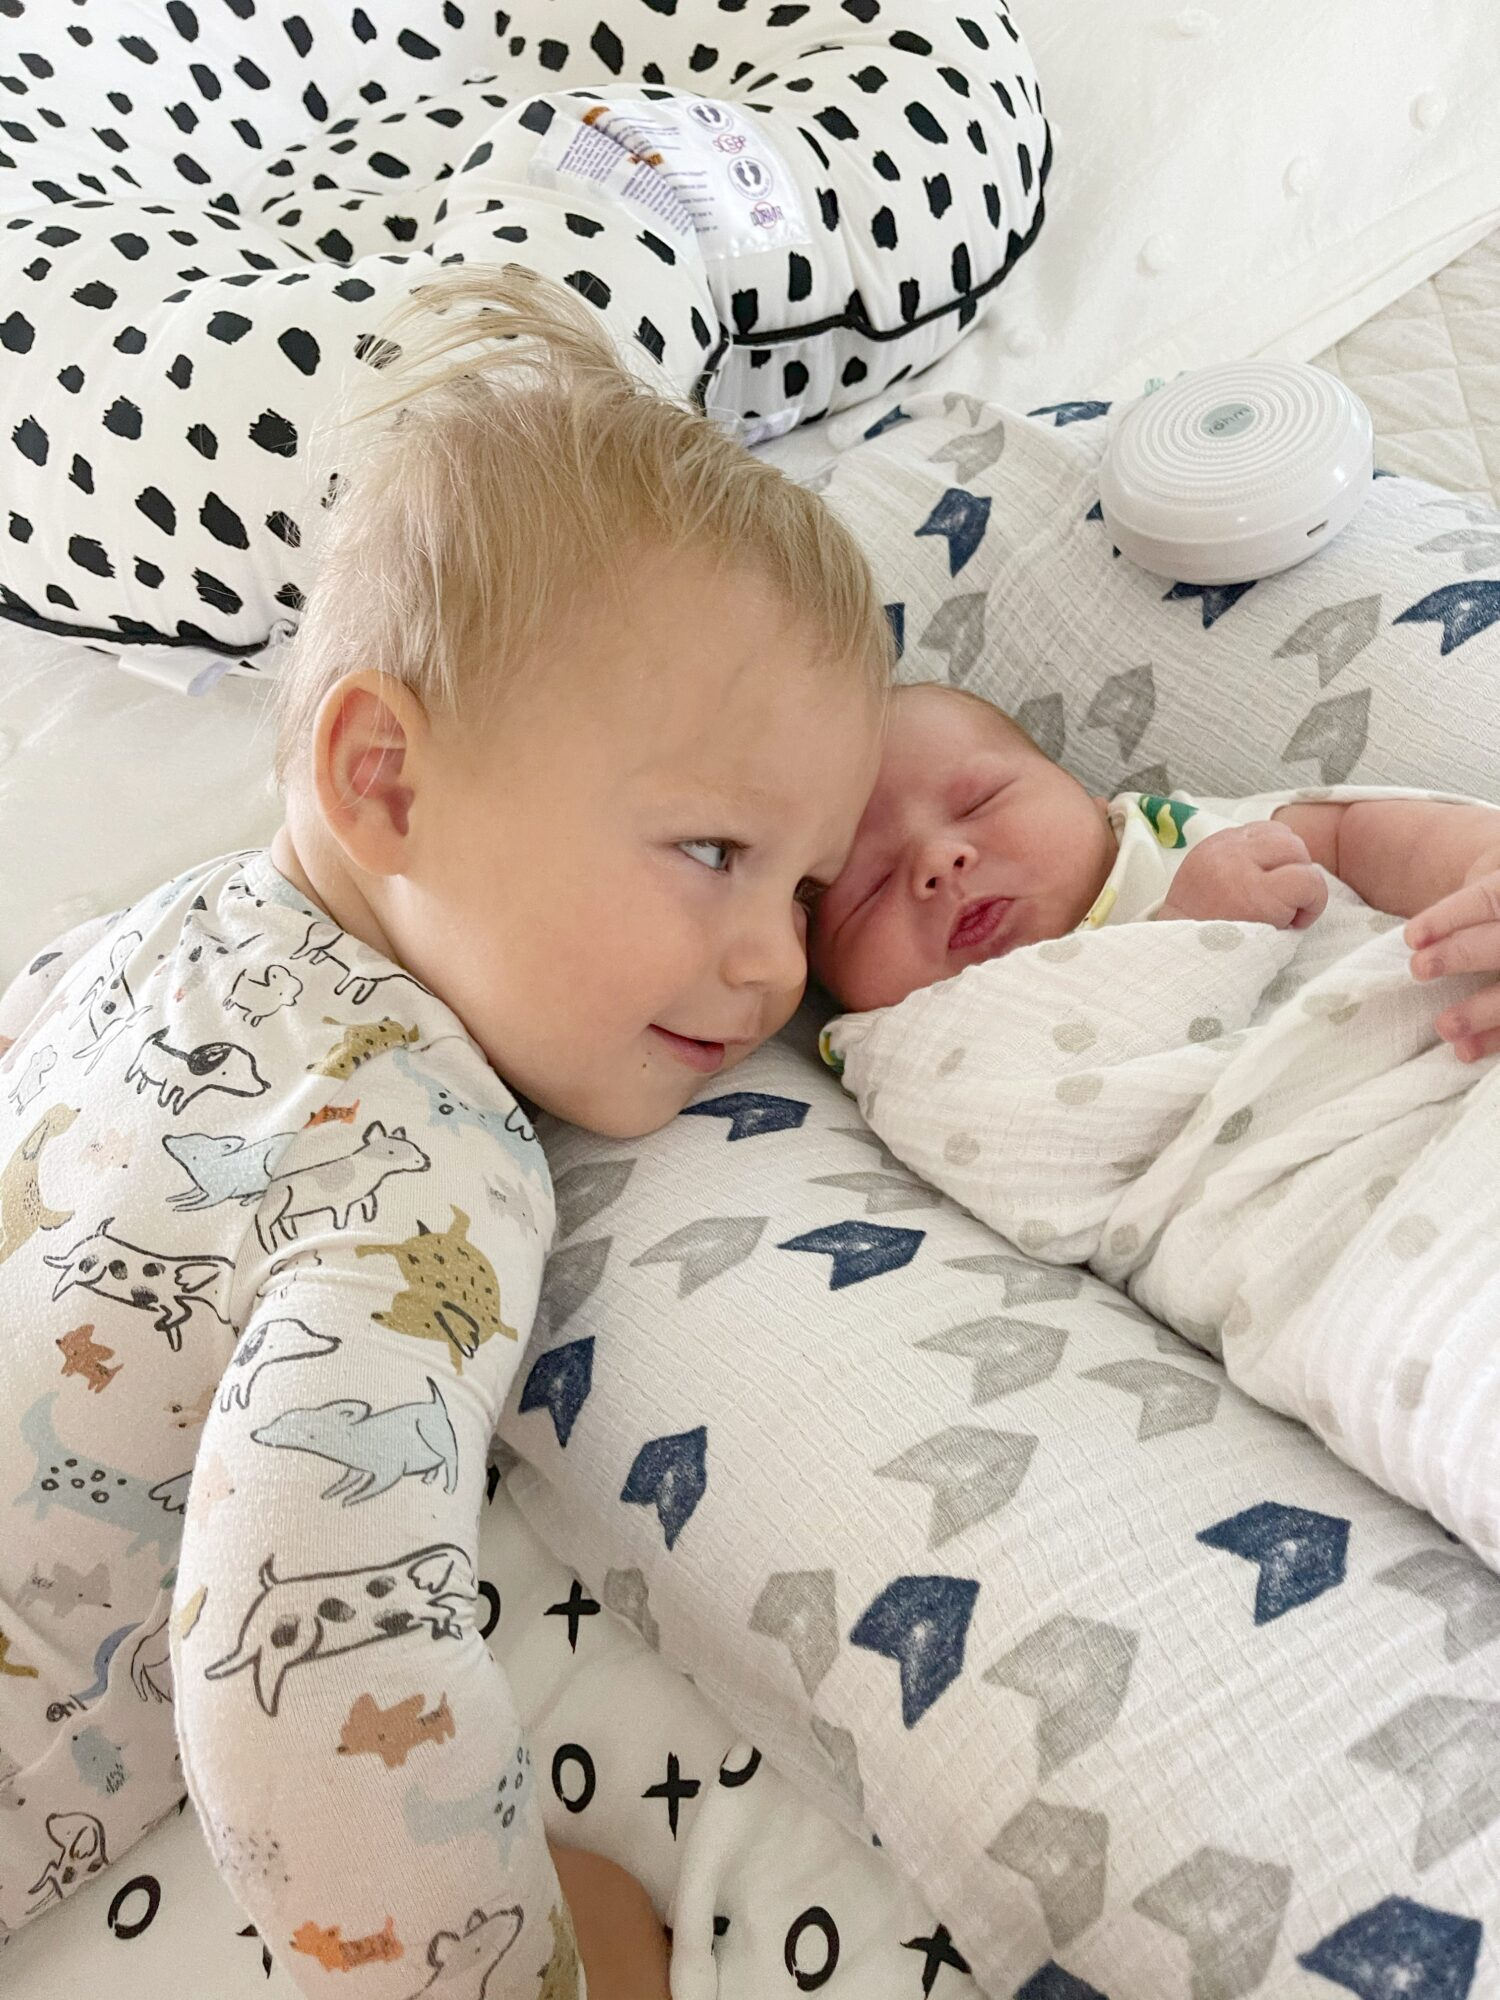 west home birth story